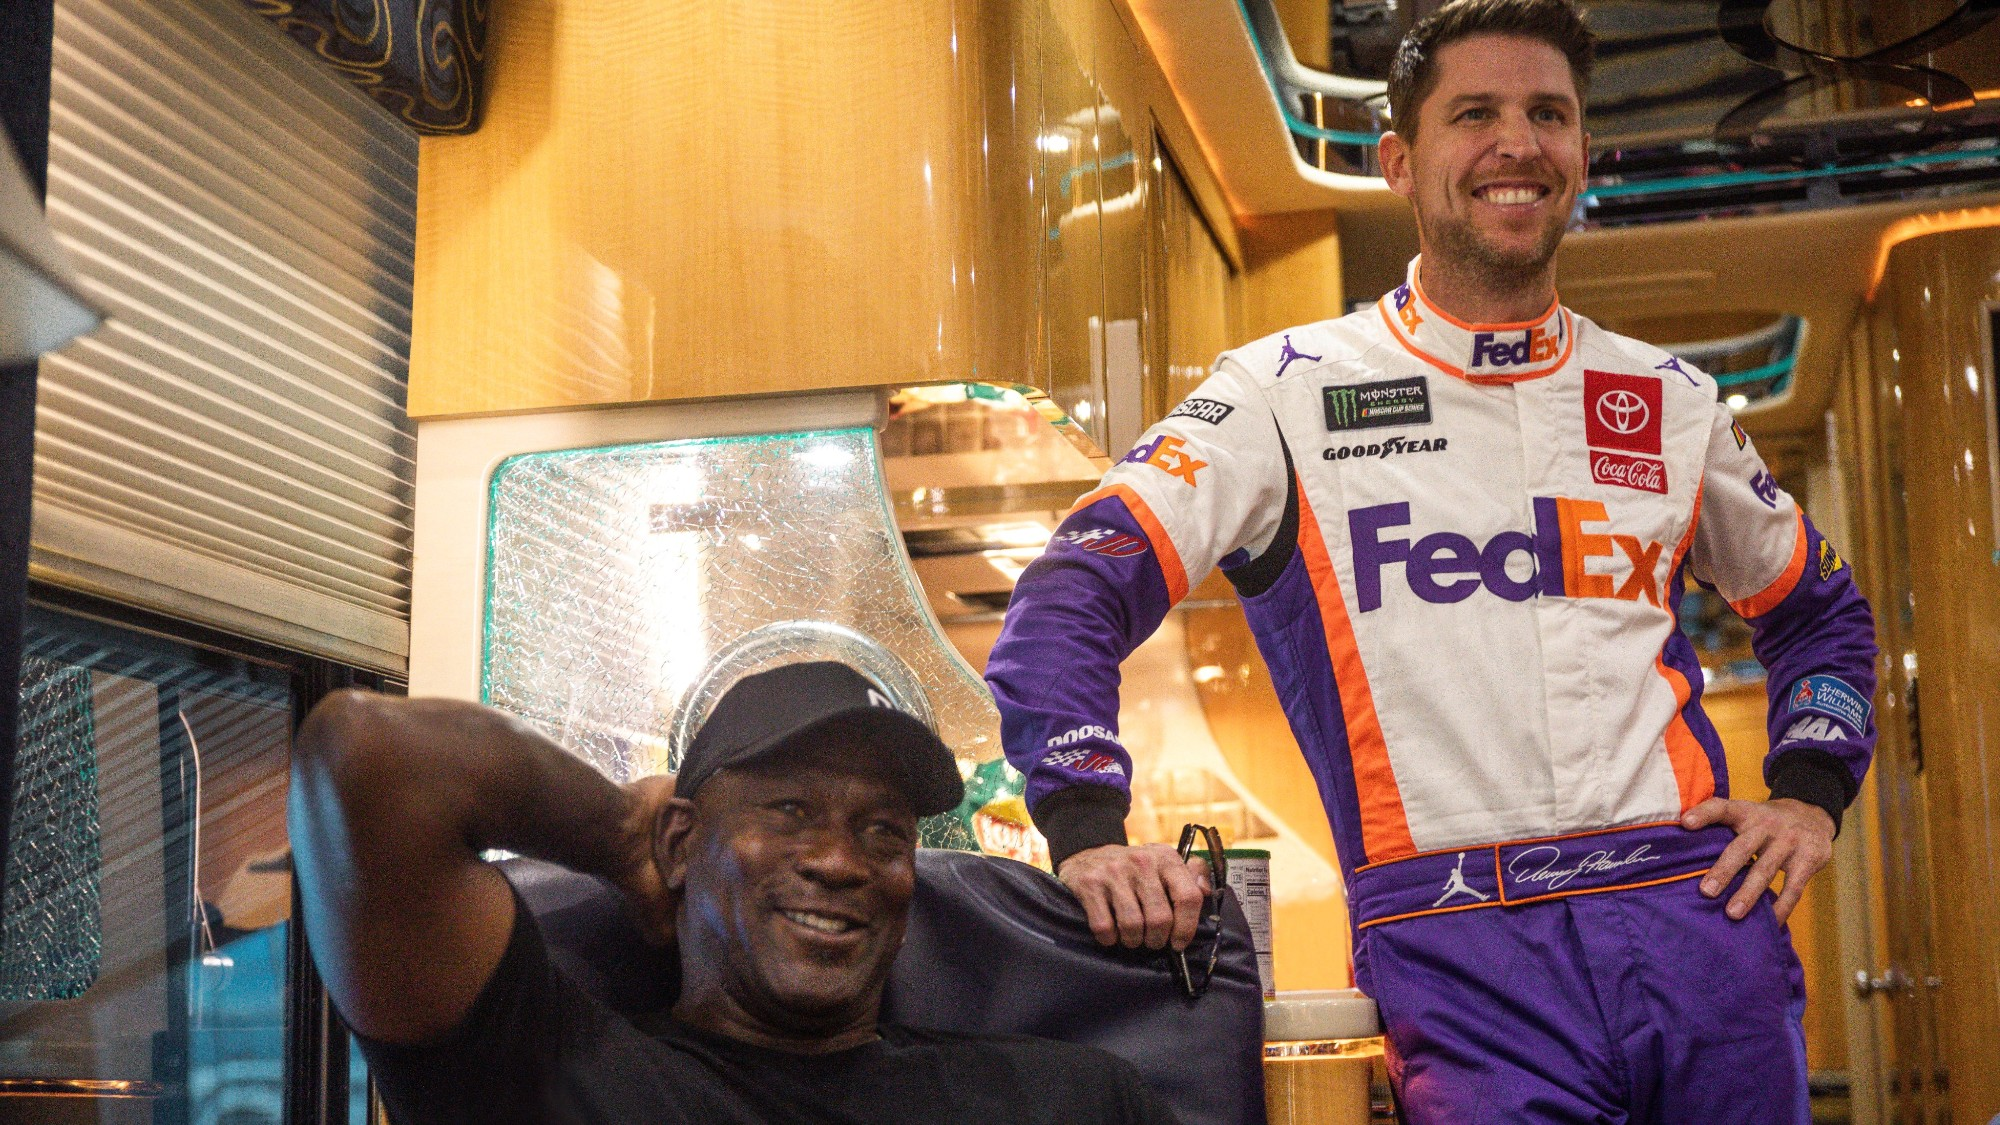 NBA legend Michael Jordan behind new NASCAR Cup team with Bubba Wallace as driver